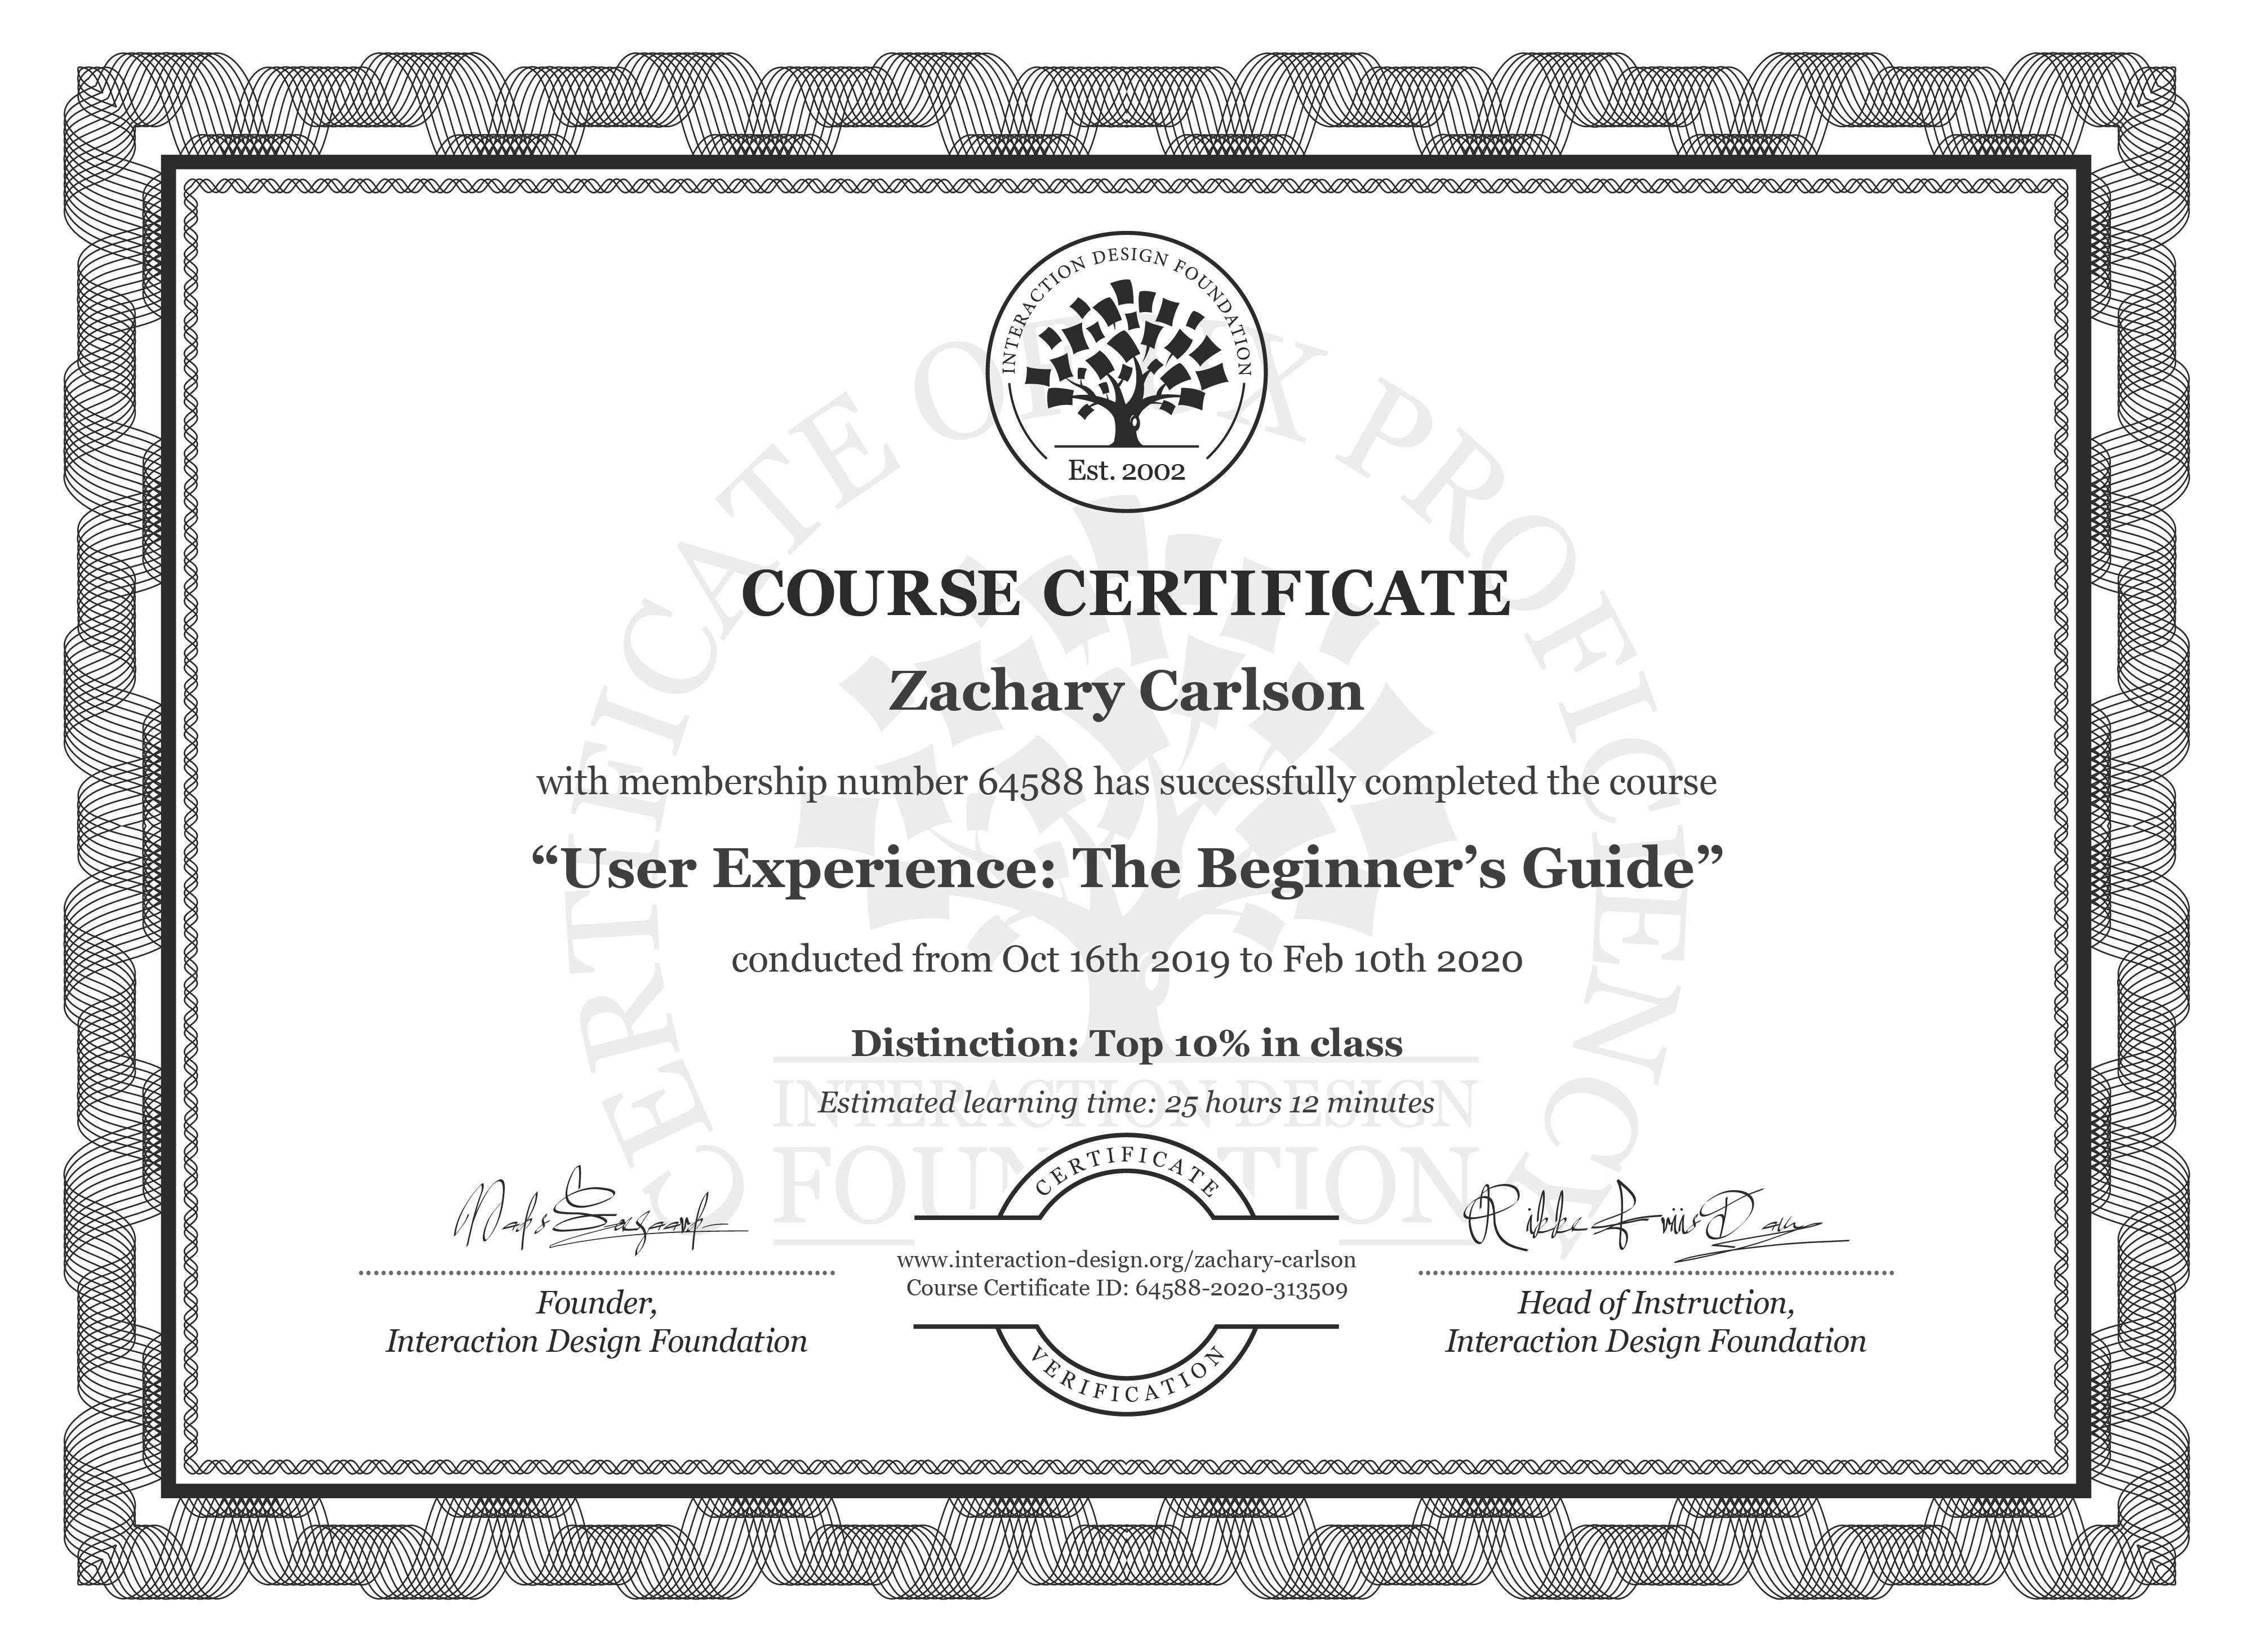 Zachary Carlson's Course Certificate: Become a UX Designer from Scratch